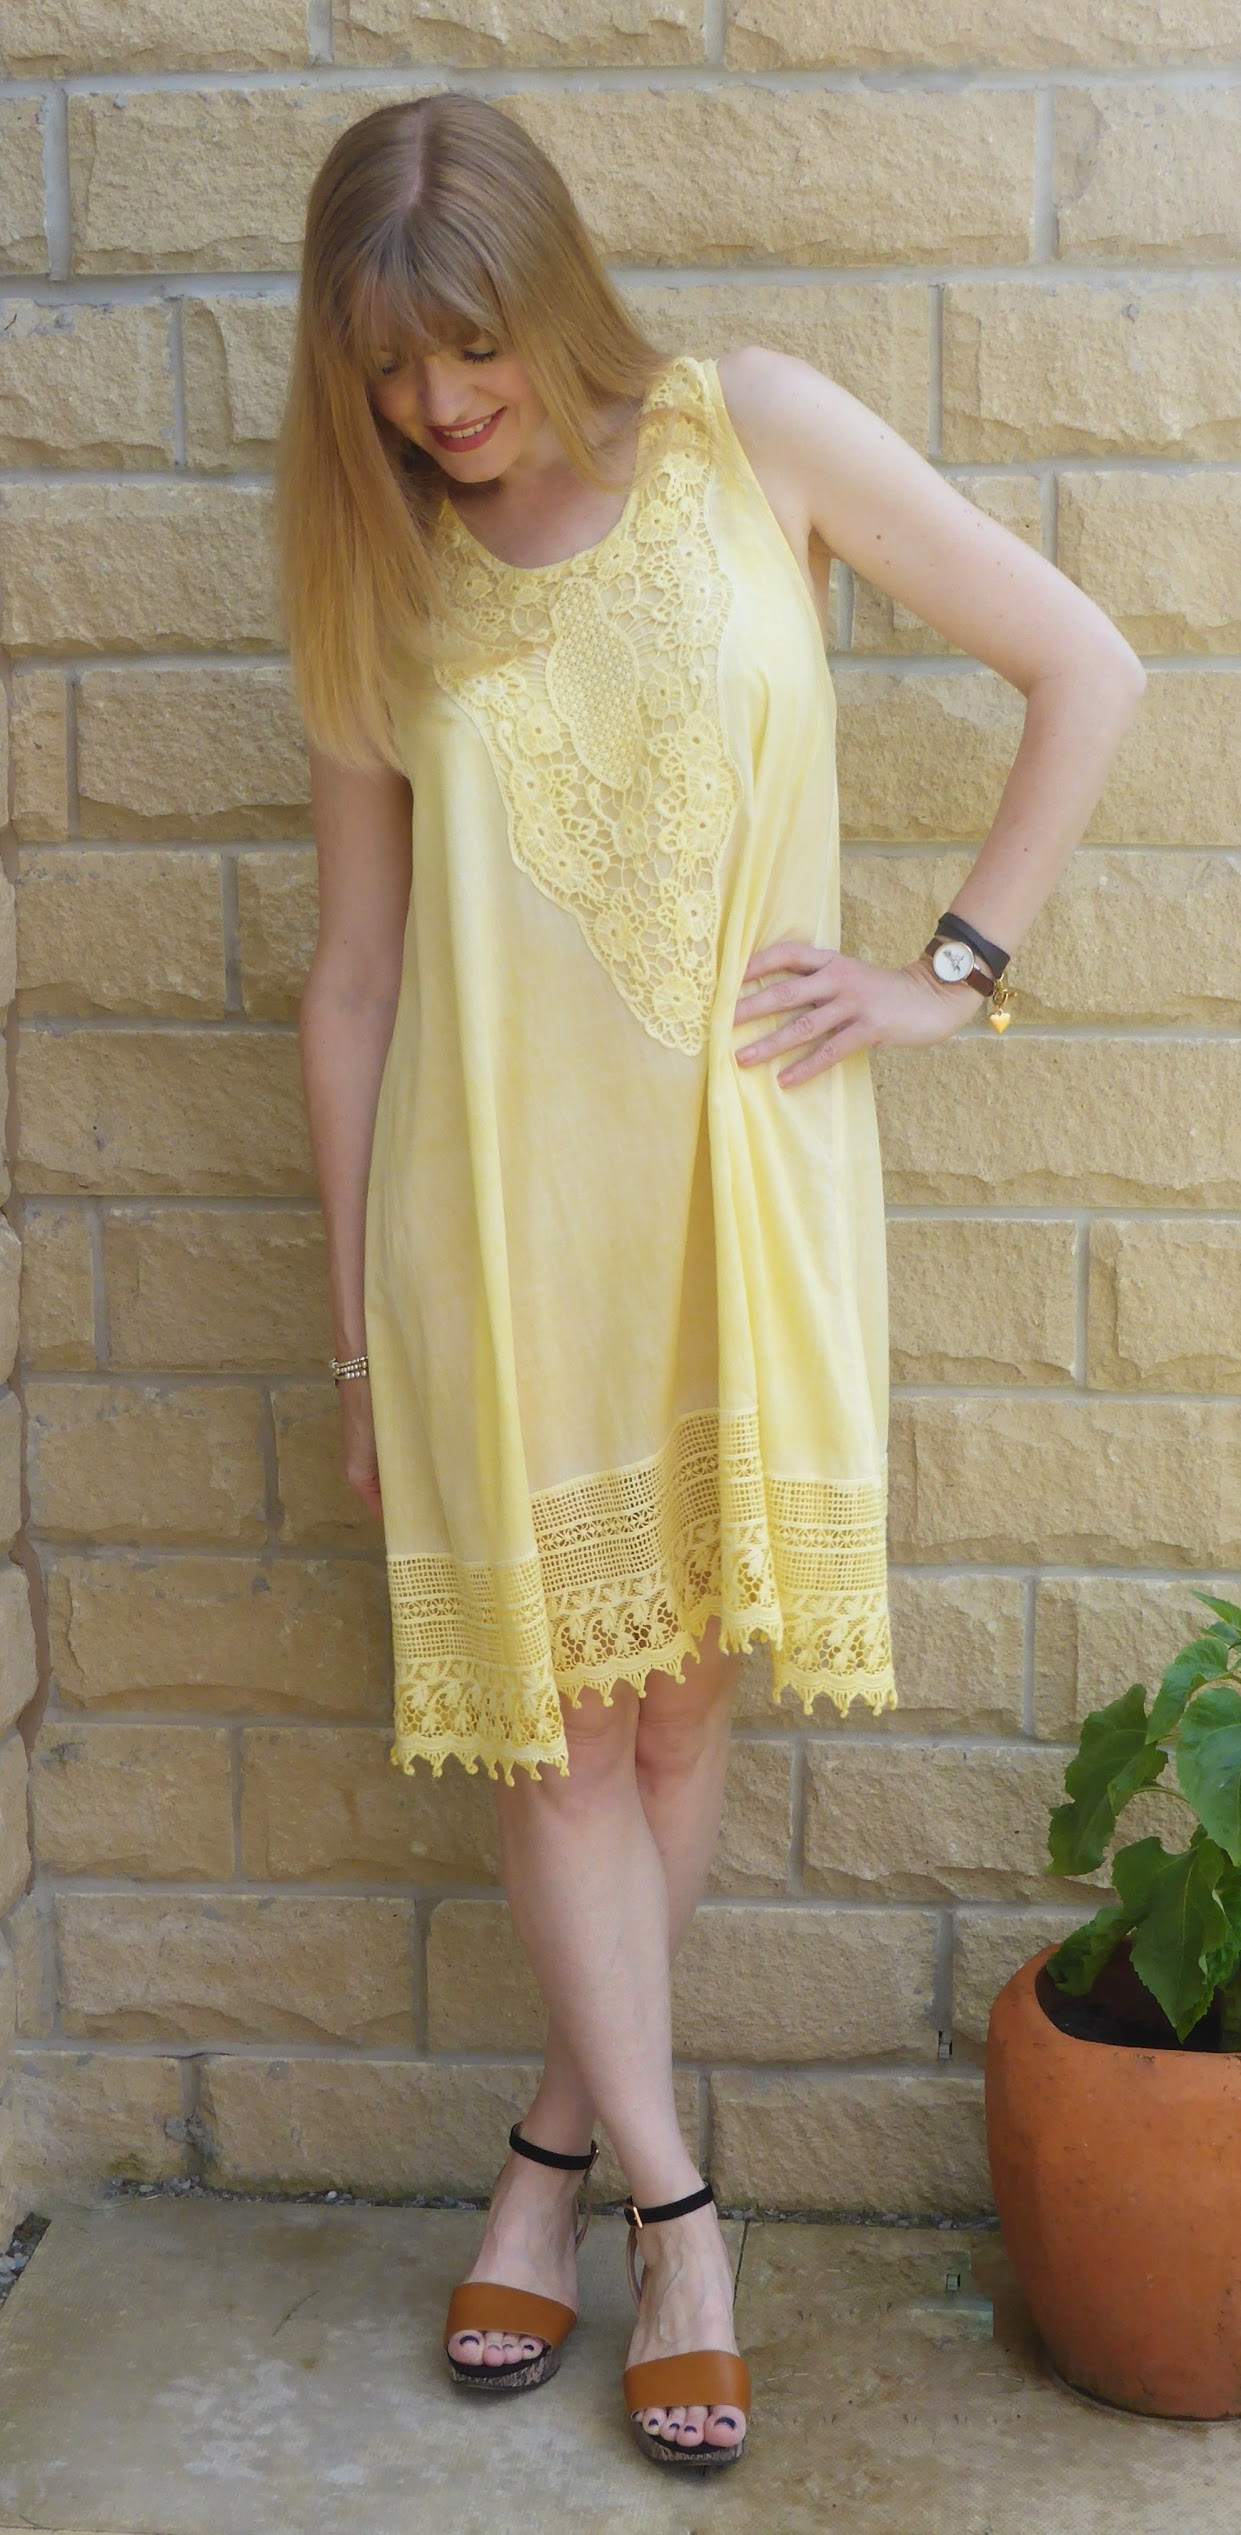 Over 40 blogger What Lizzy Loves wears yellow lace sundress with Clarks snake print wedge sandals